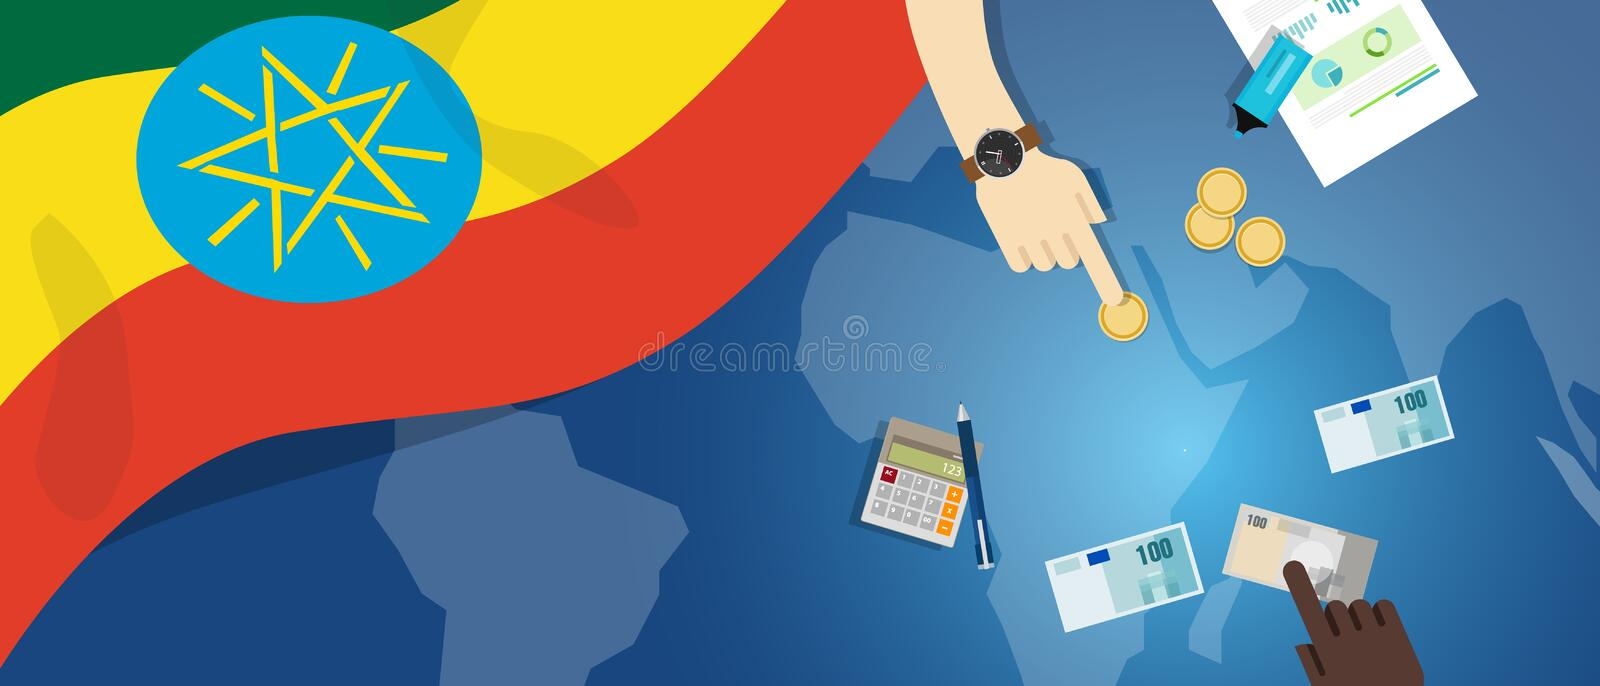 Ethiopia economy fiscal money trade concept illustration of financial banking budget with flag map and currency. Vector vector illustration